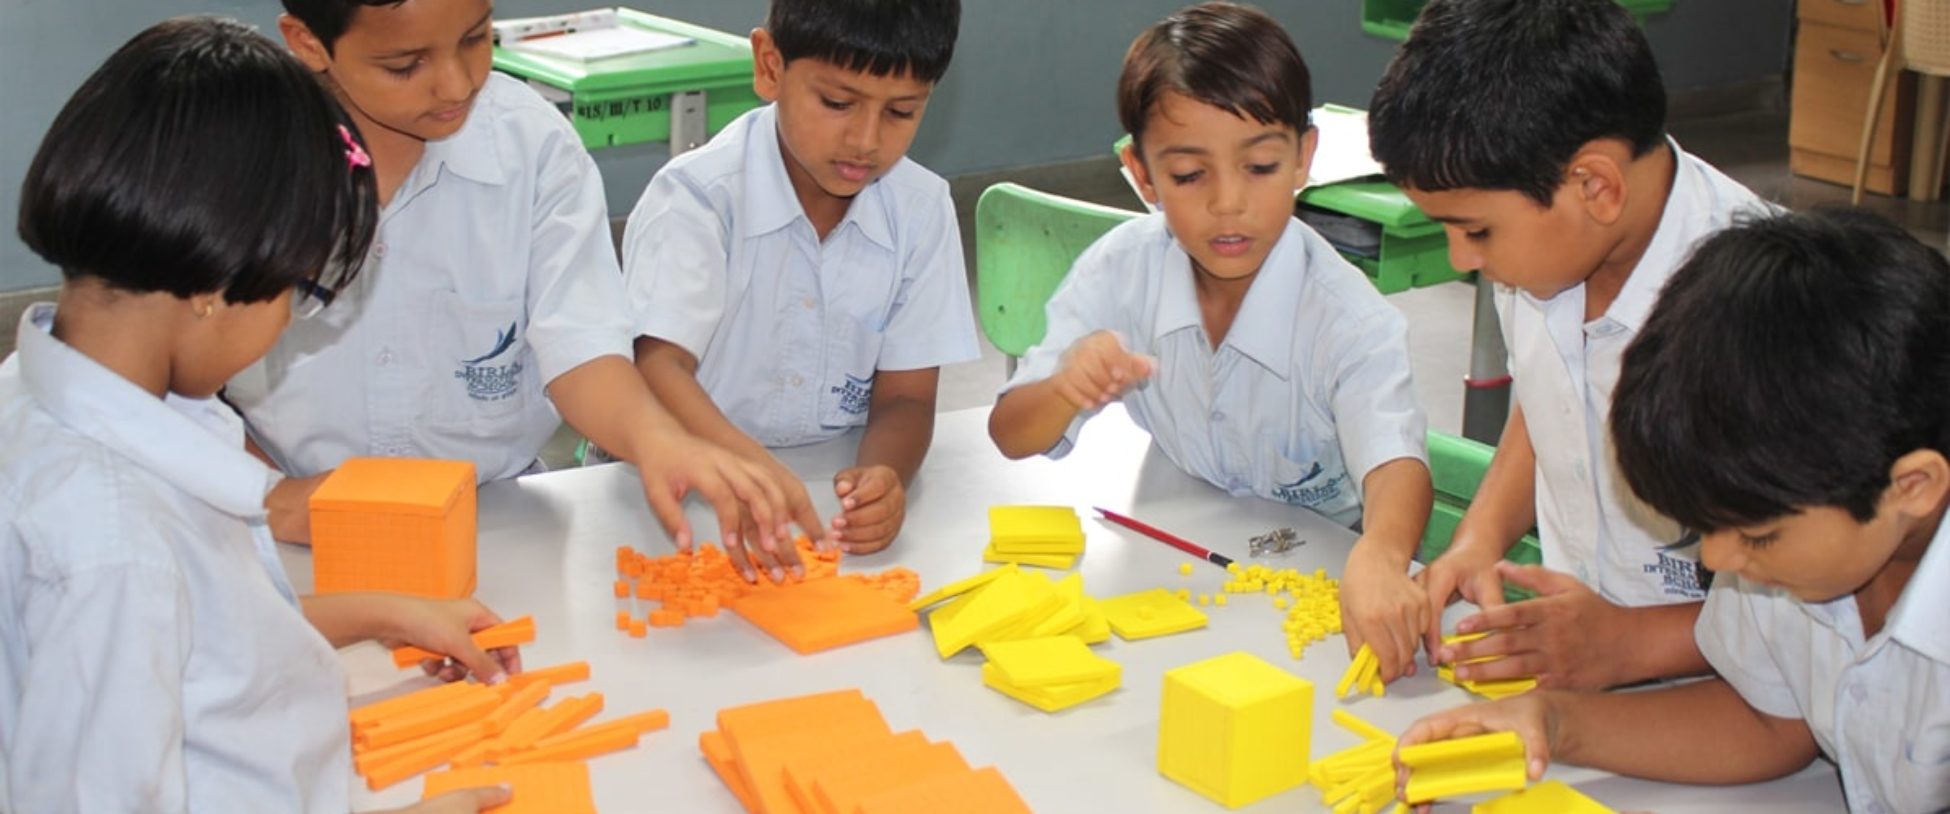 kids jumling with letters